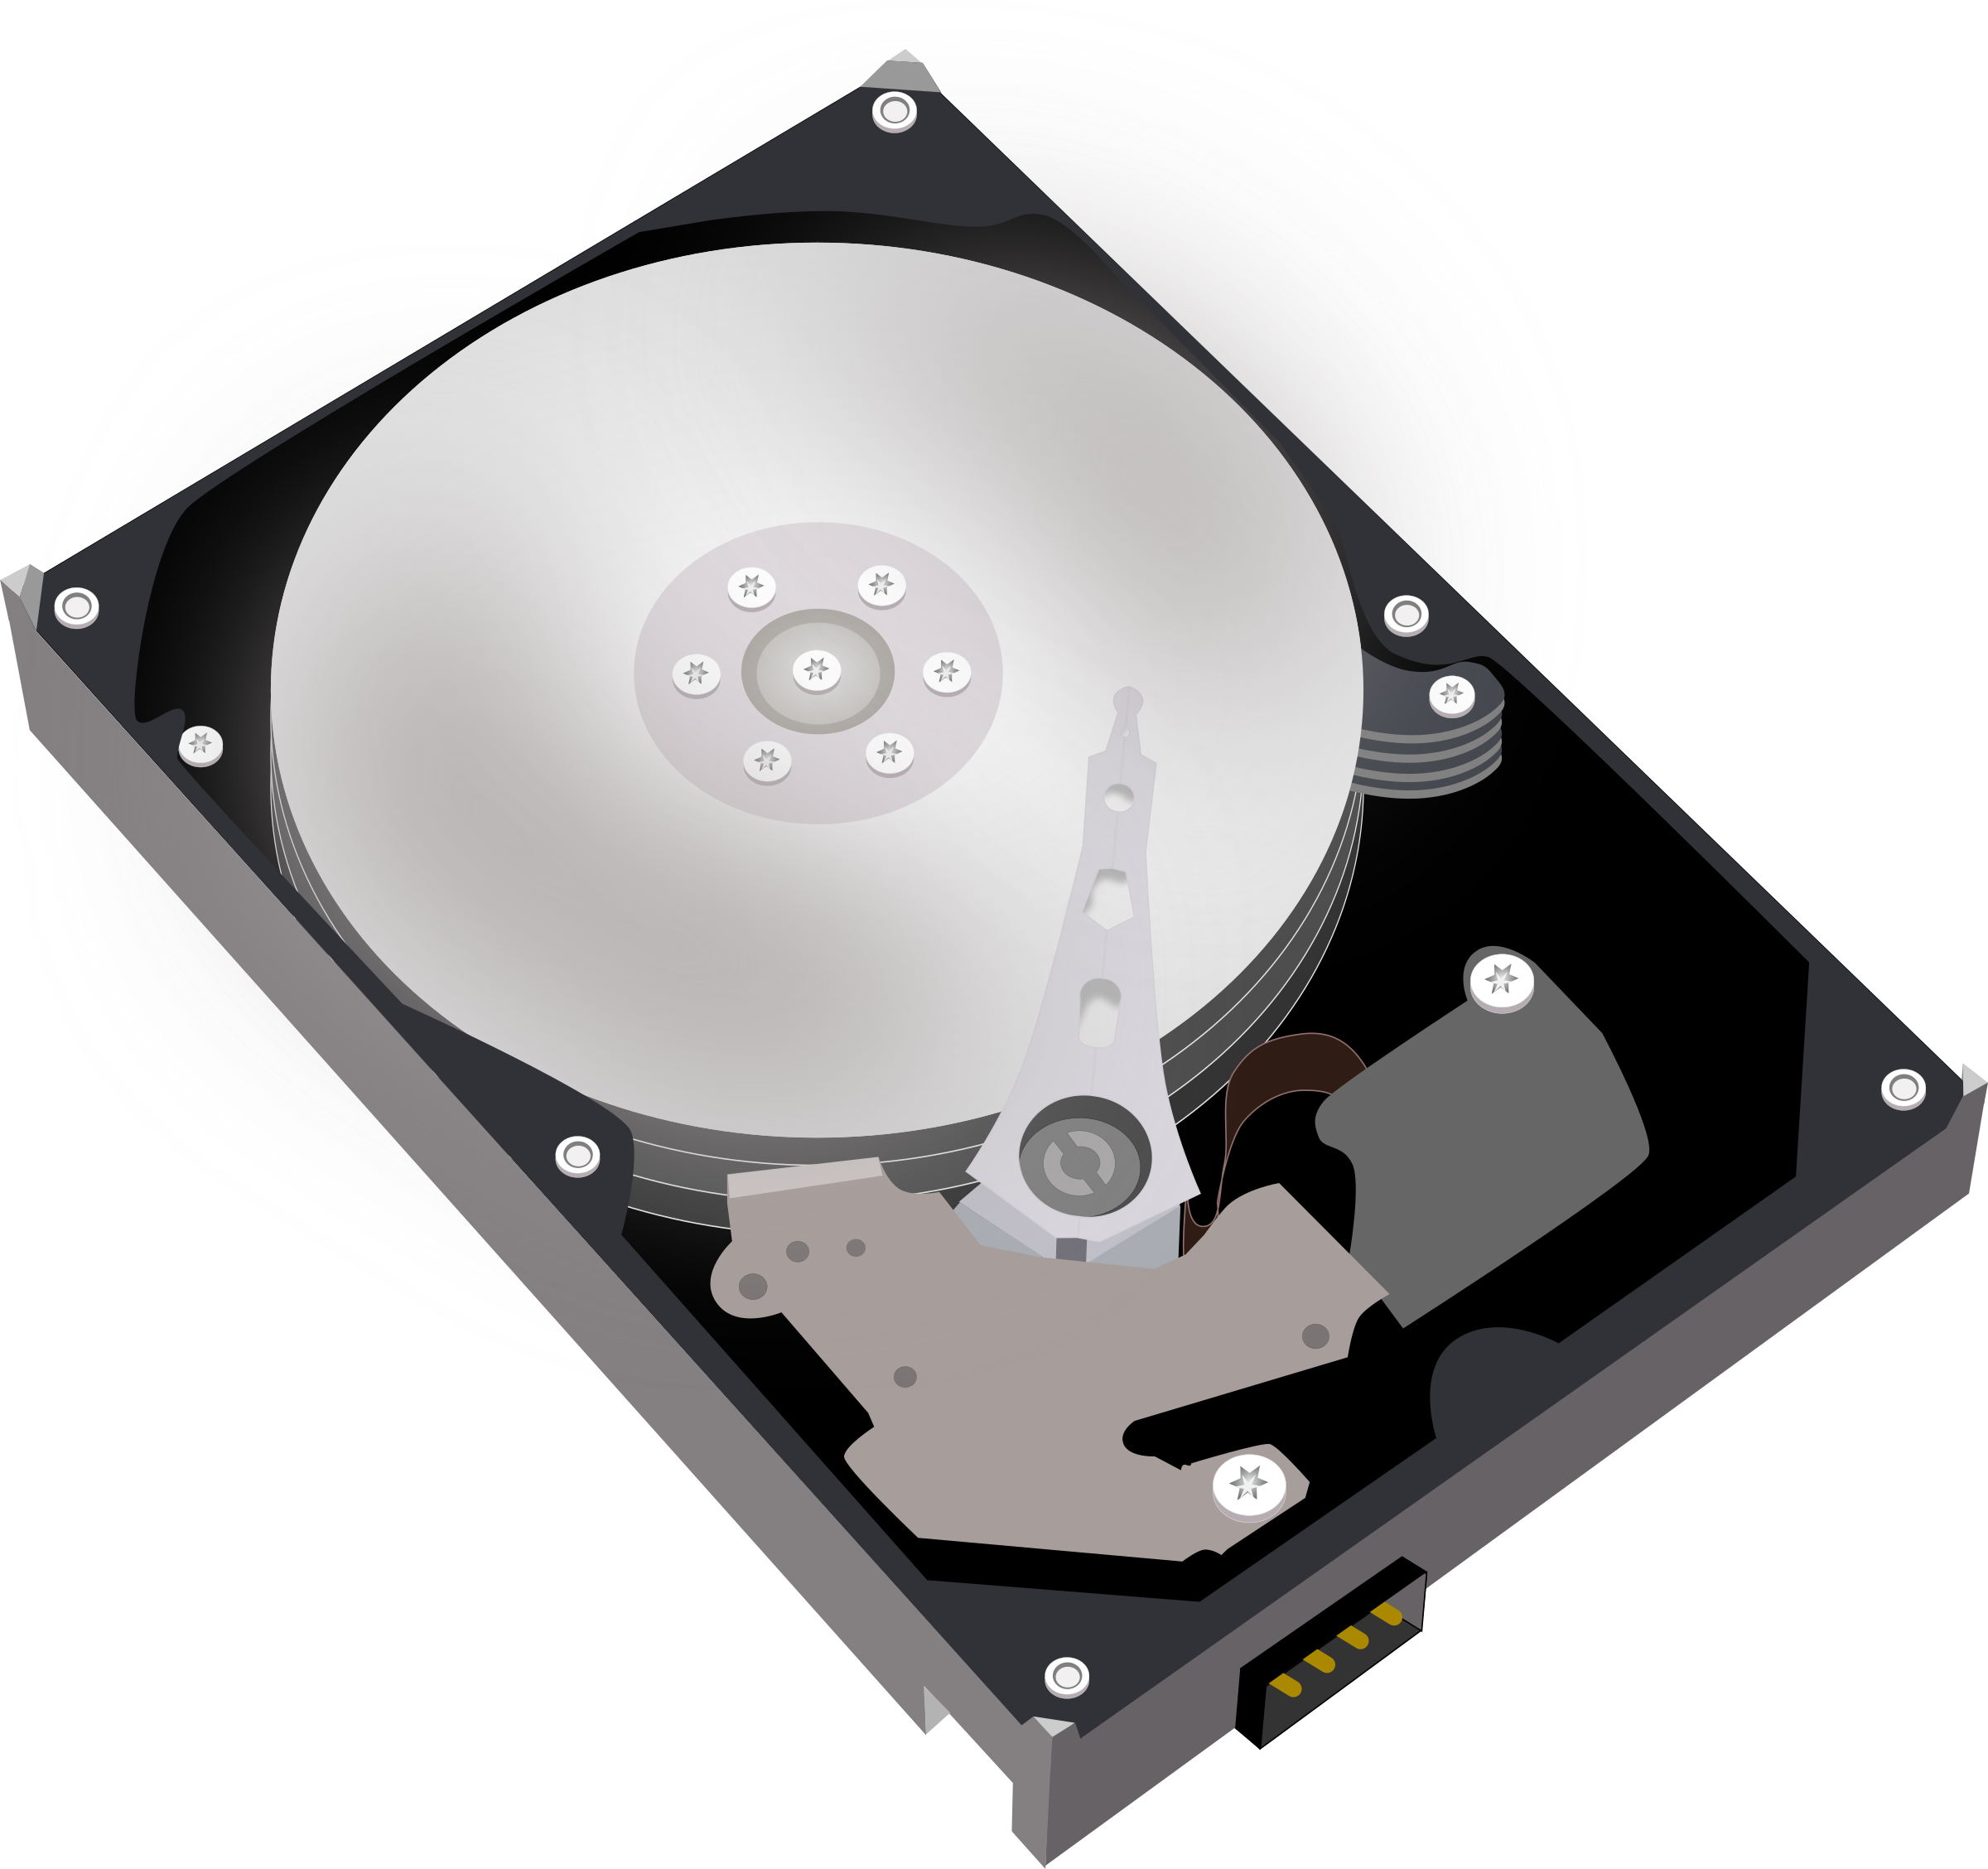 Hard disk Harddisk HDD by sagar_ns